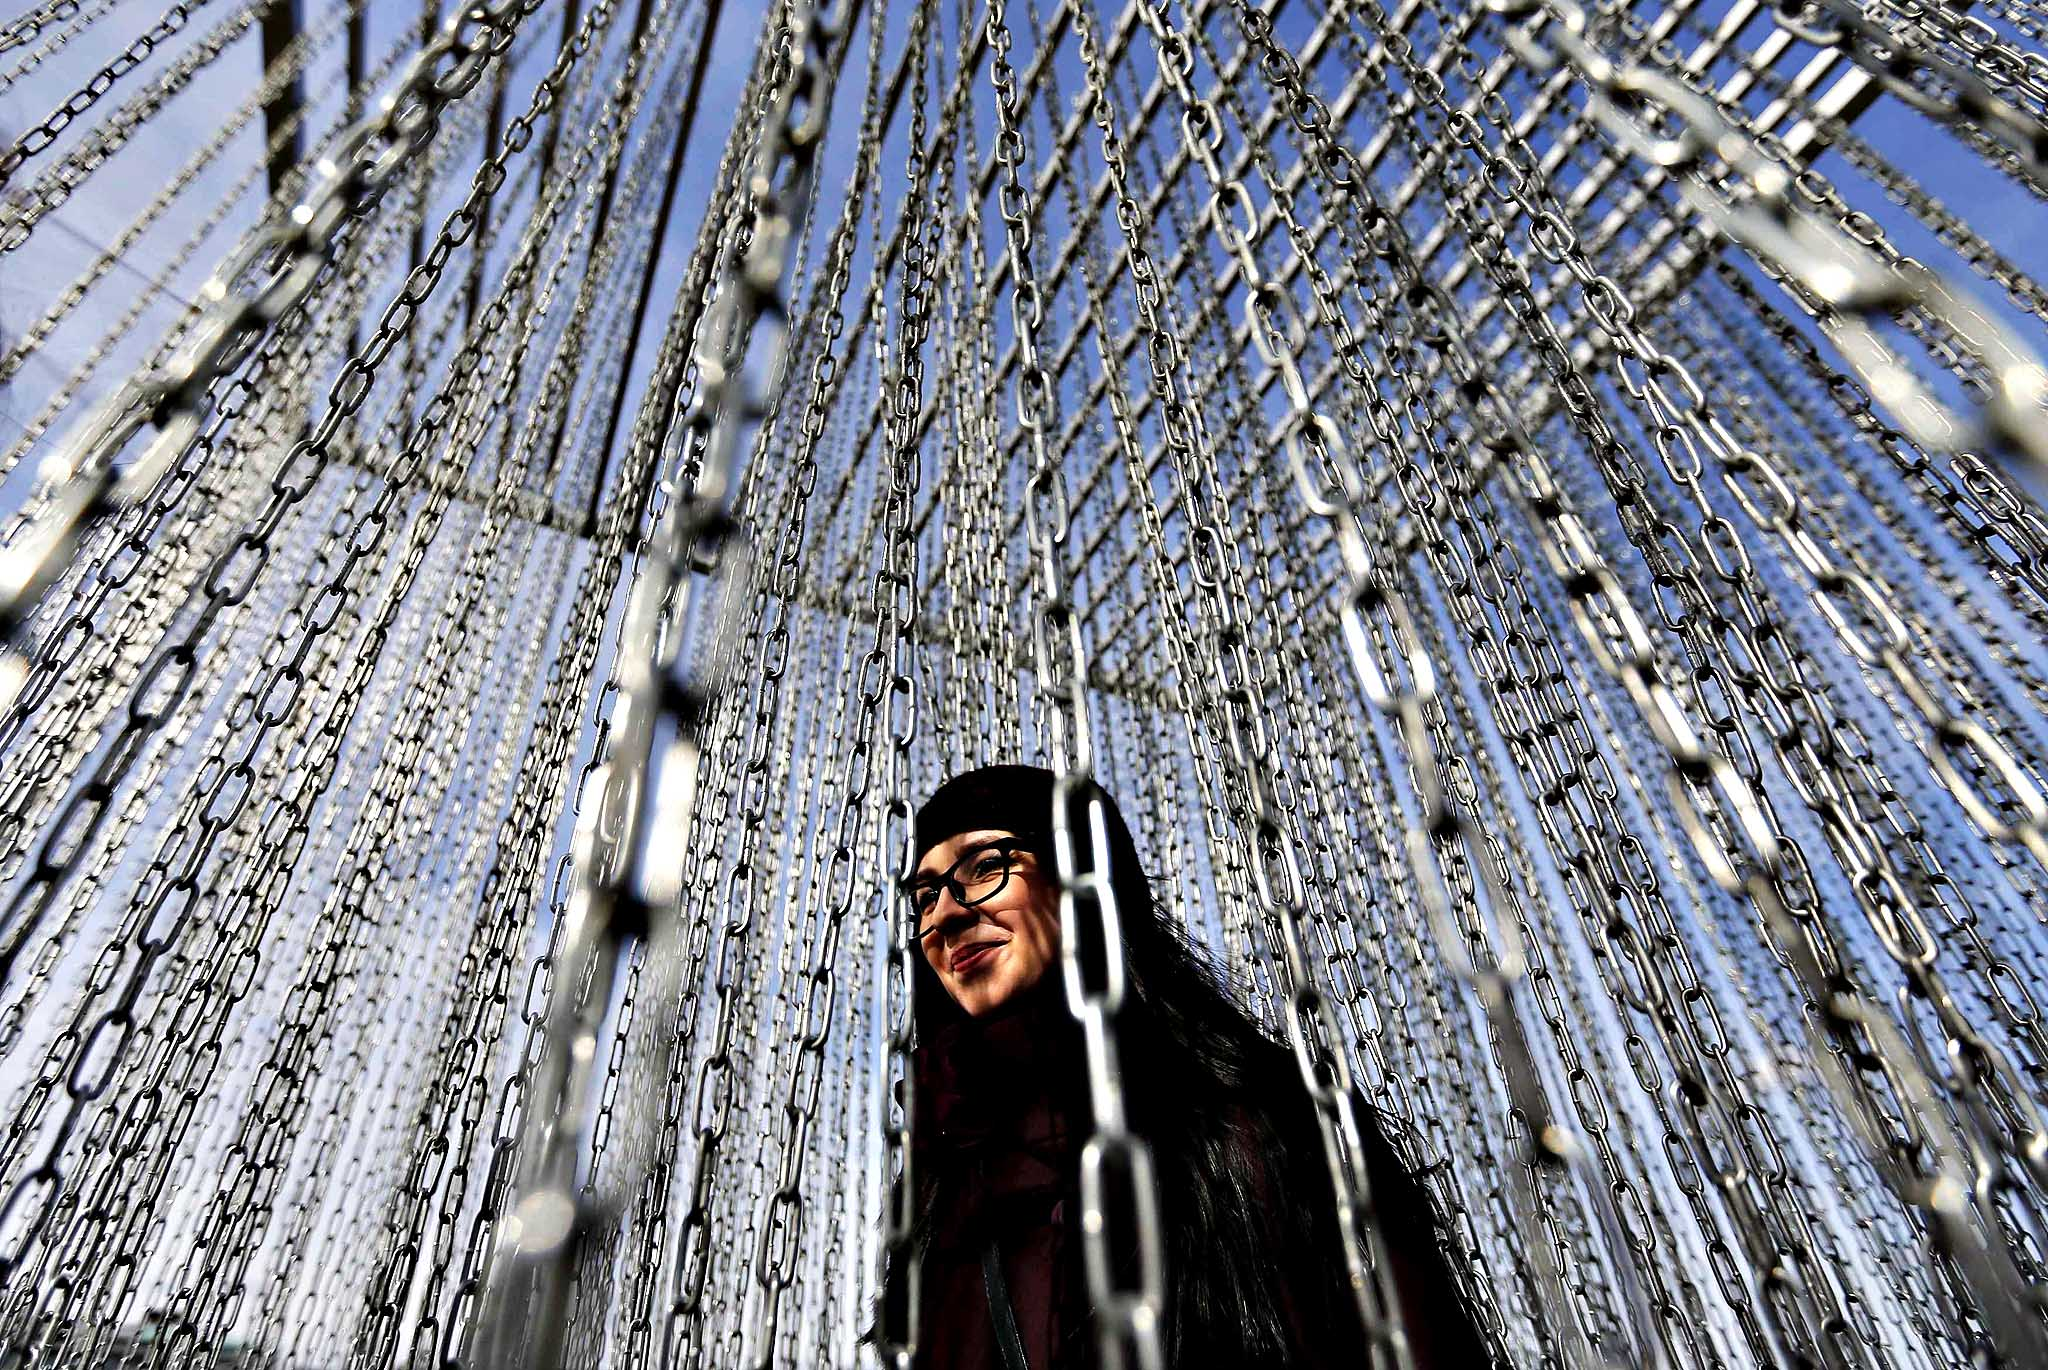 A woman walks amidst chains as she views an art installation near the Gorky Central Park of Culture and Leisure in Moscow, March 14, 2014.